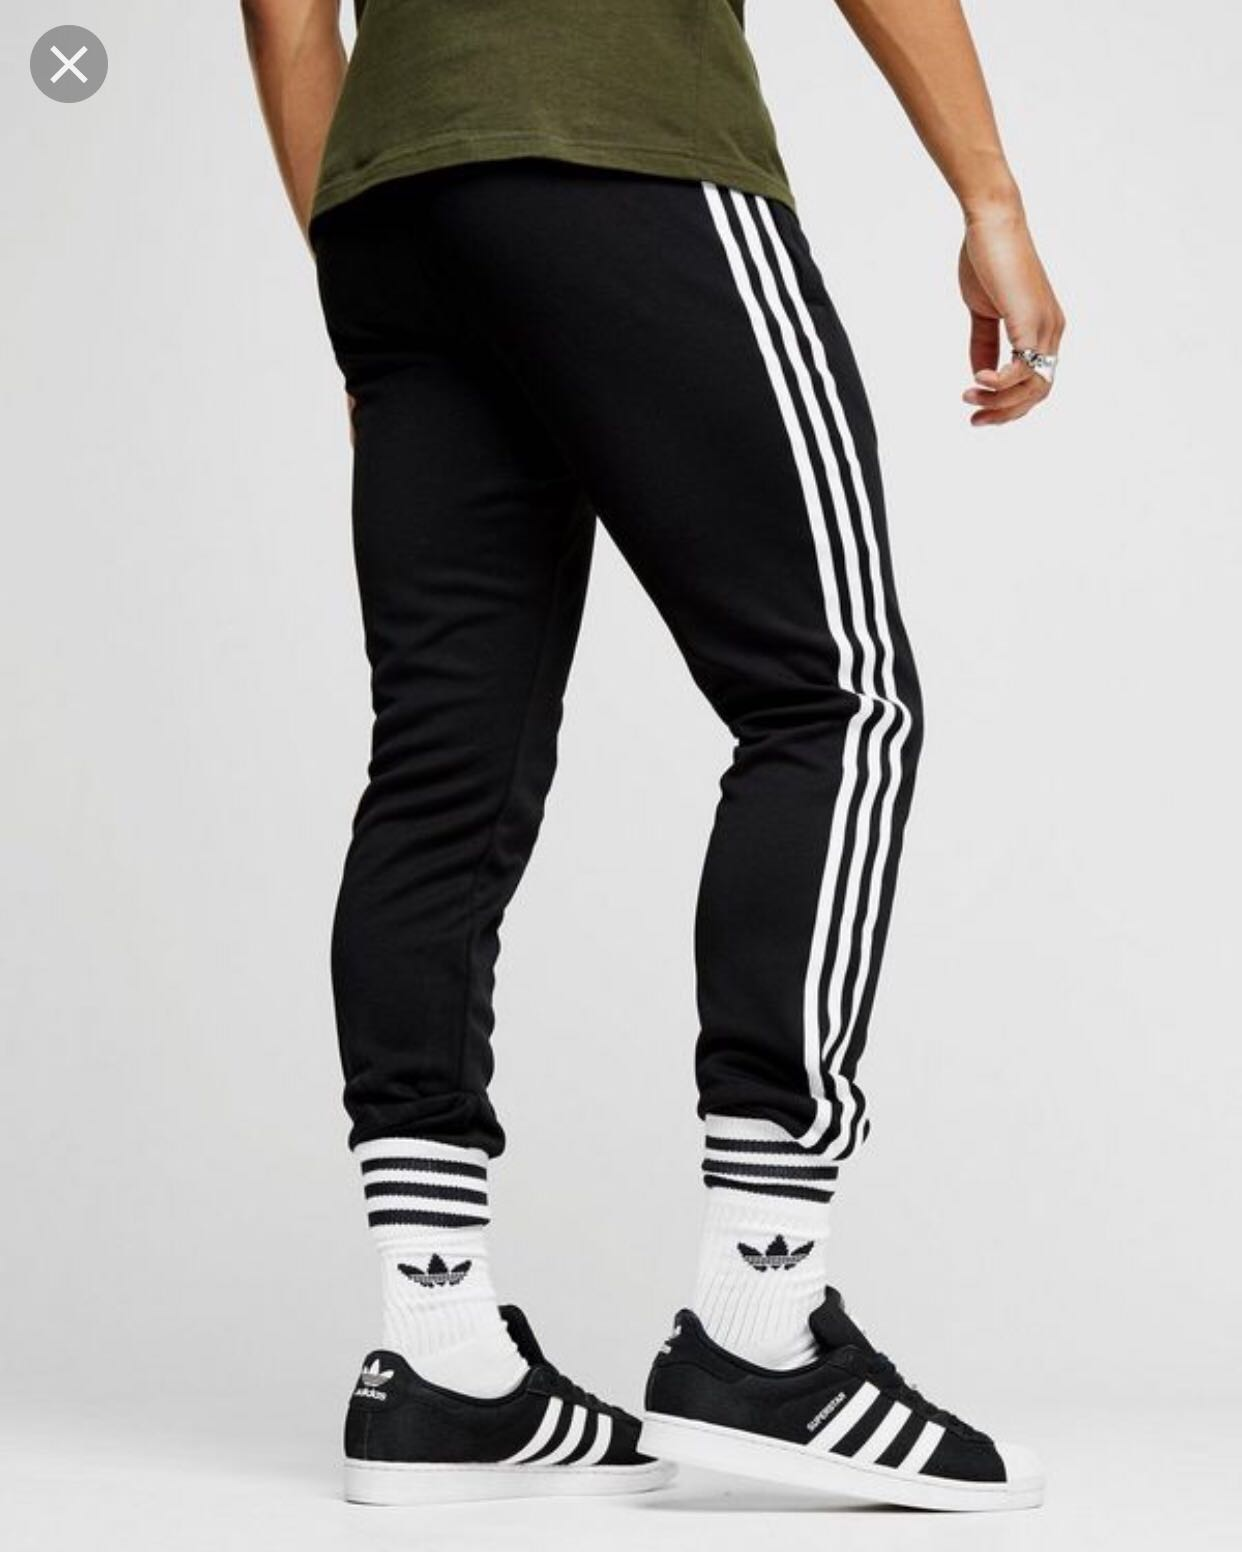 new arrival 98448 dad9b Adidas Original Superstar Skinny Cuffed Joggers, Women s Fashion, Clothes,  Pants, Jeans   Shorts on Carousell